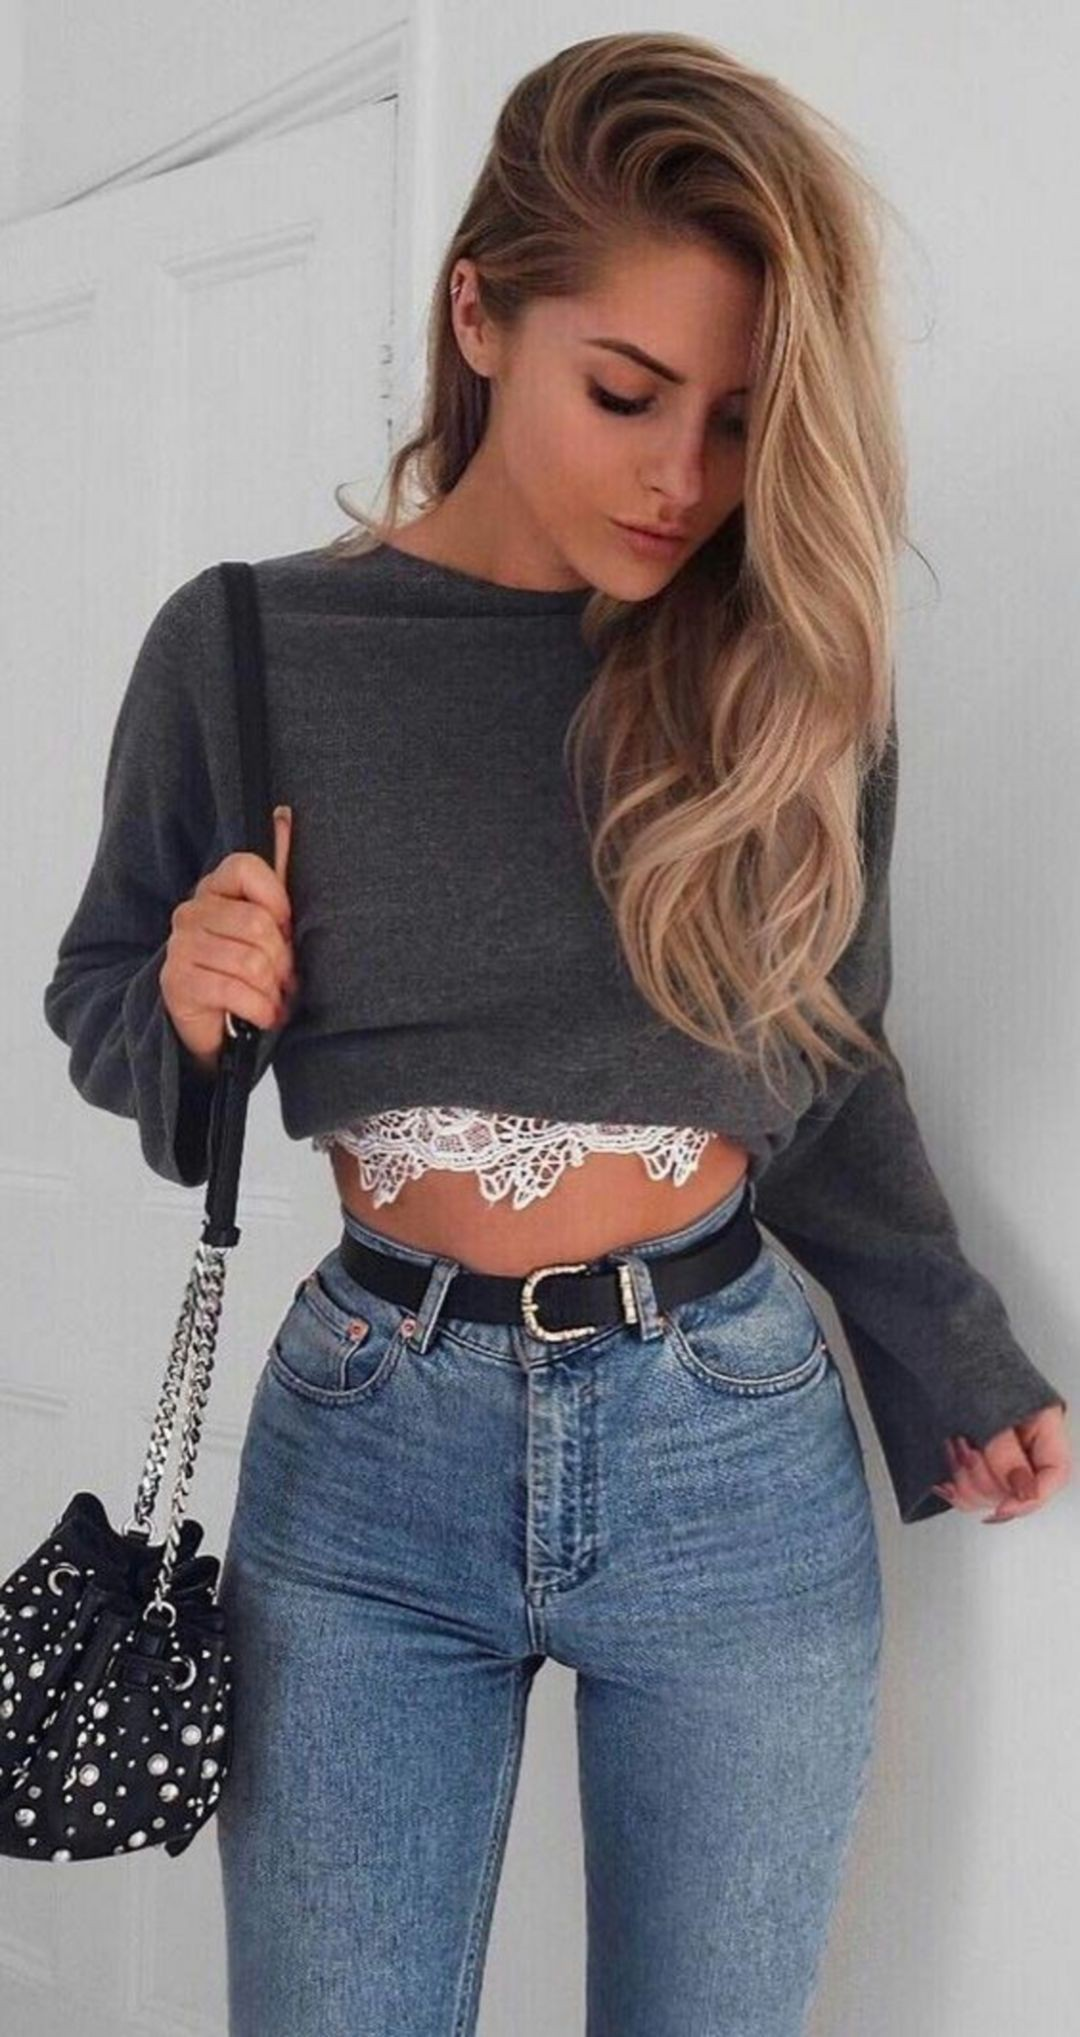 London fashion style cropped sweater outfit, Crop top